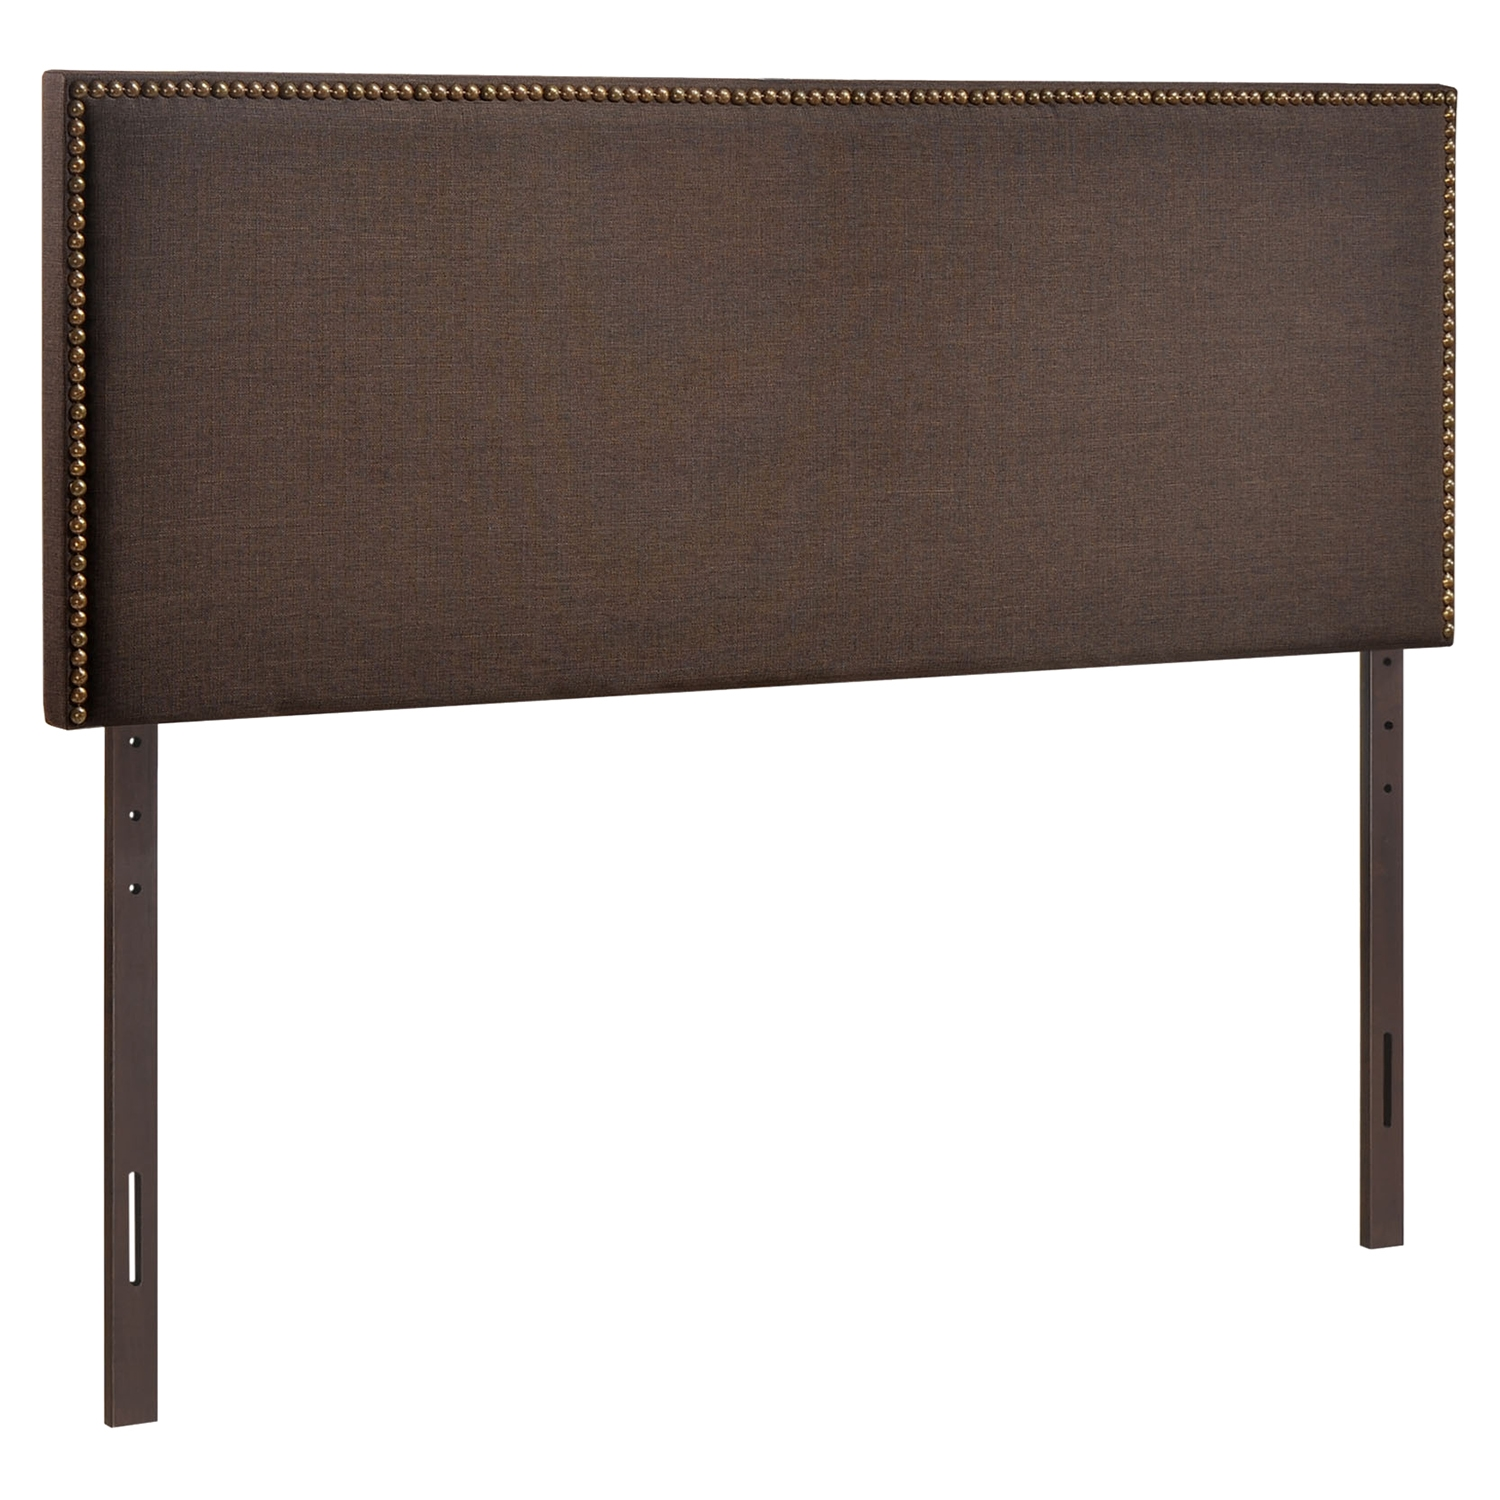 Region Queen Nailhead Upholstered Headboard - EEI-MOD-5215